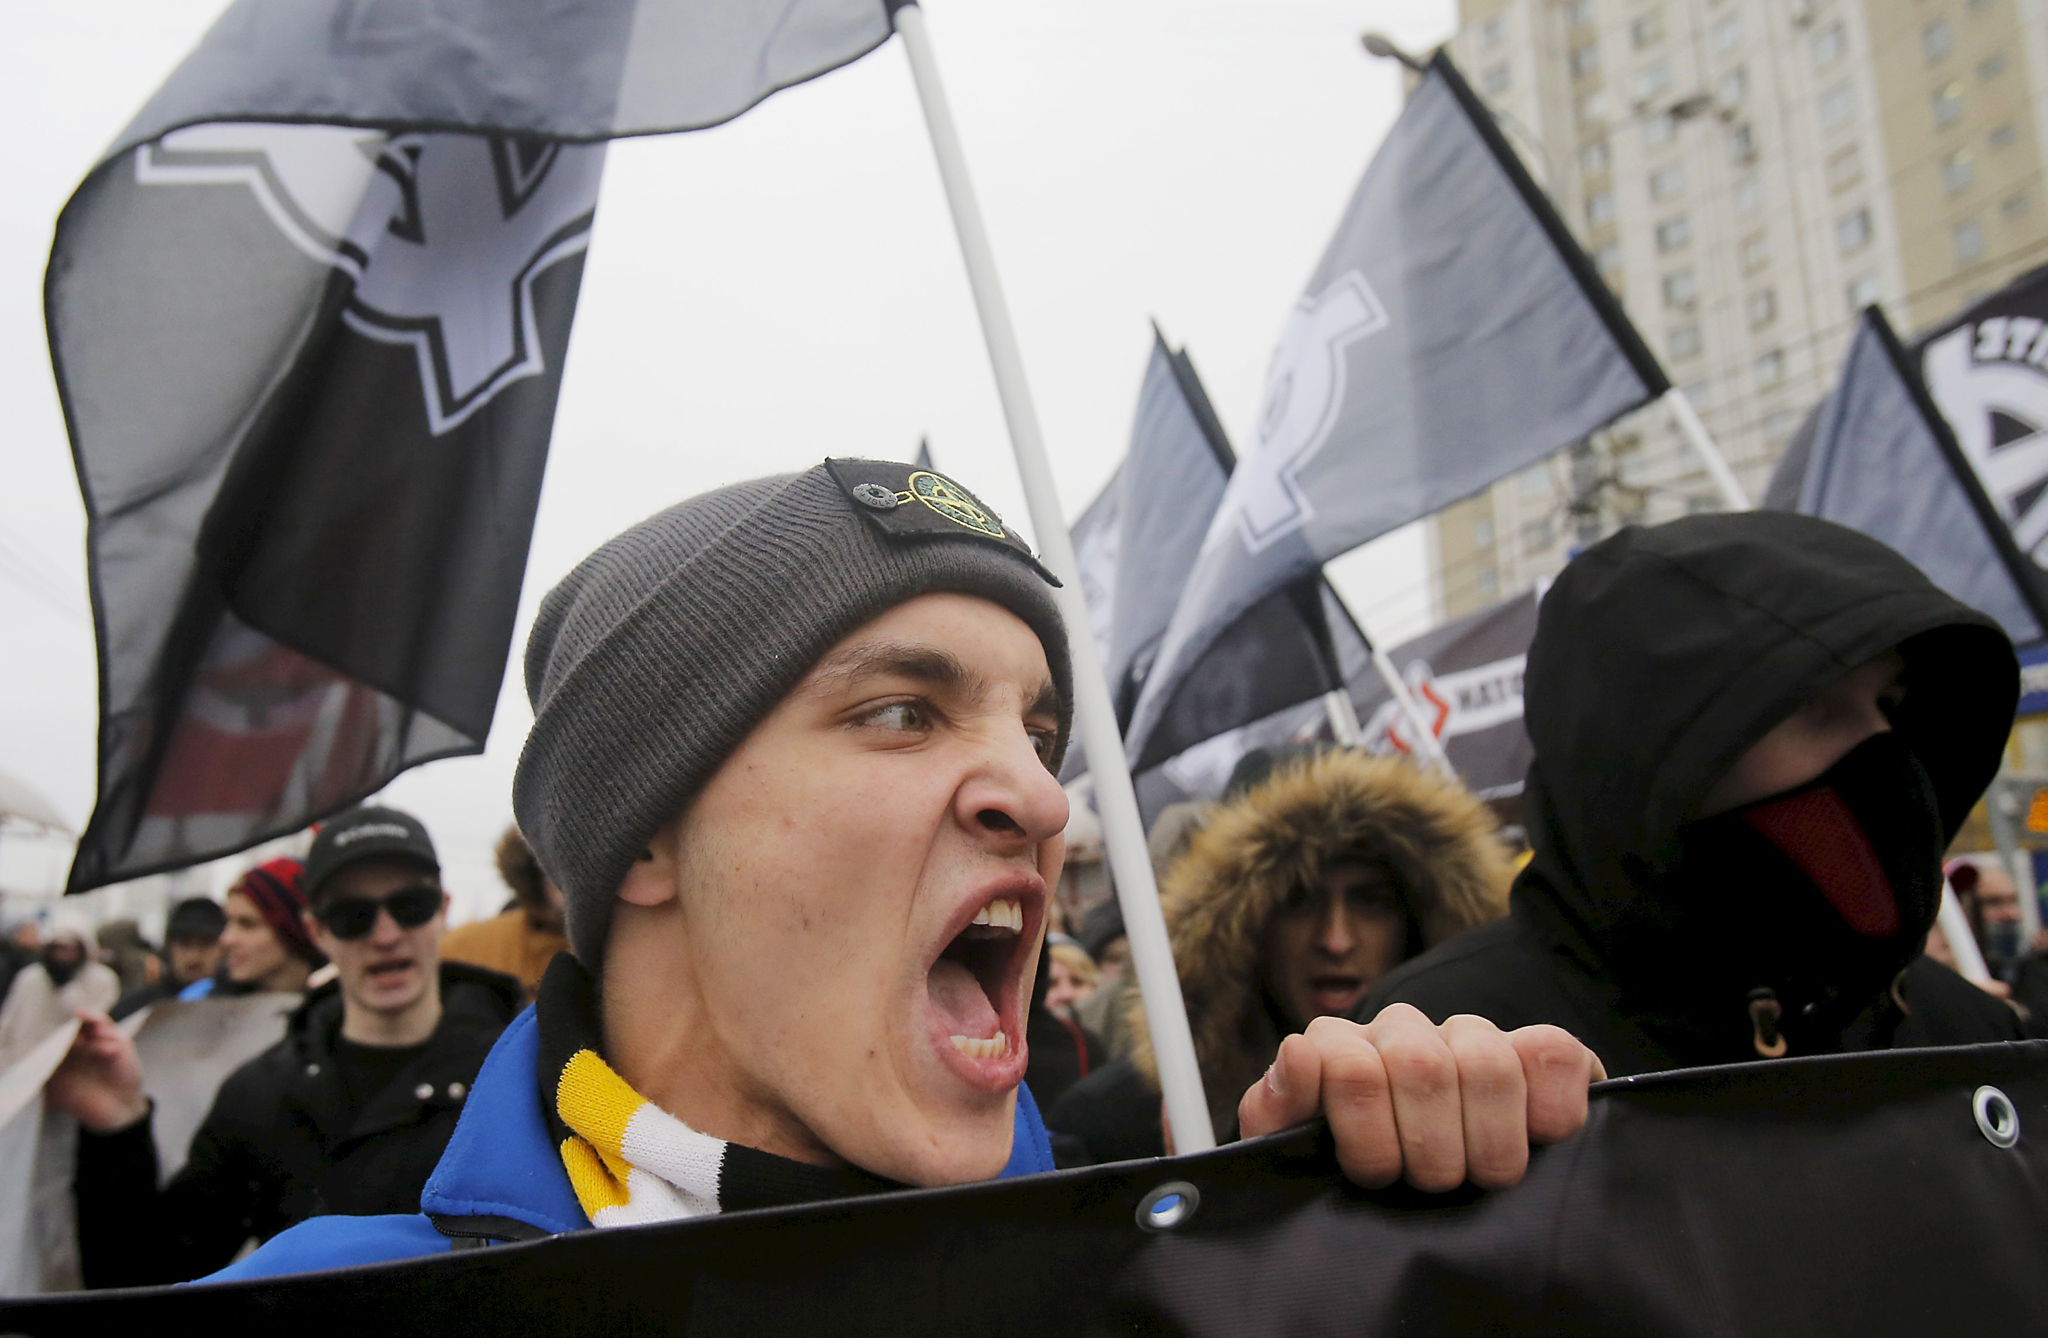 "Russian nationalists shout slogans during ""Russian March"" demonstration on National Unity Day in Moscow...Russian nationalists shout slogans during a ""Russian March"" demonstration on National Unity Day in Moscow, Russia November 4, 2015. Russia marks National Unity Day on November 4 to celebrate the defeat of Polish invaders in 1612. REUTERS/Maxim Shemetov"